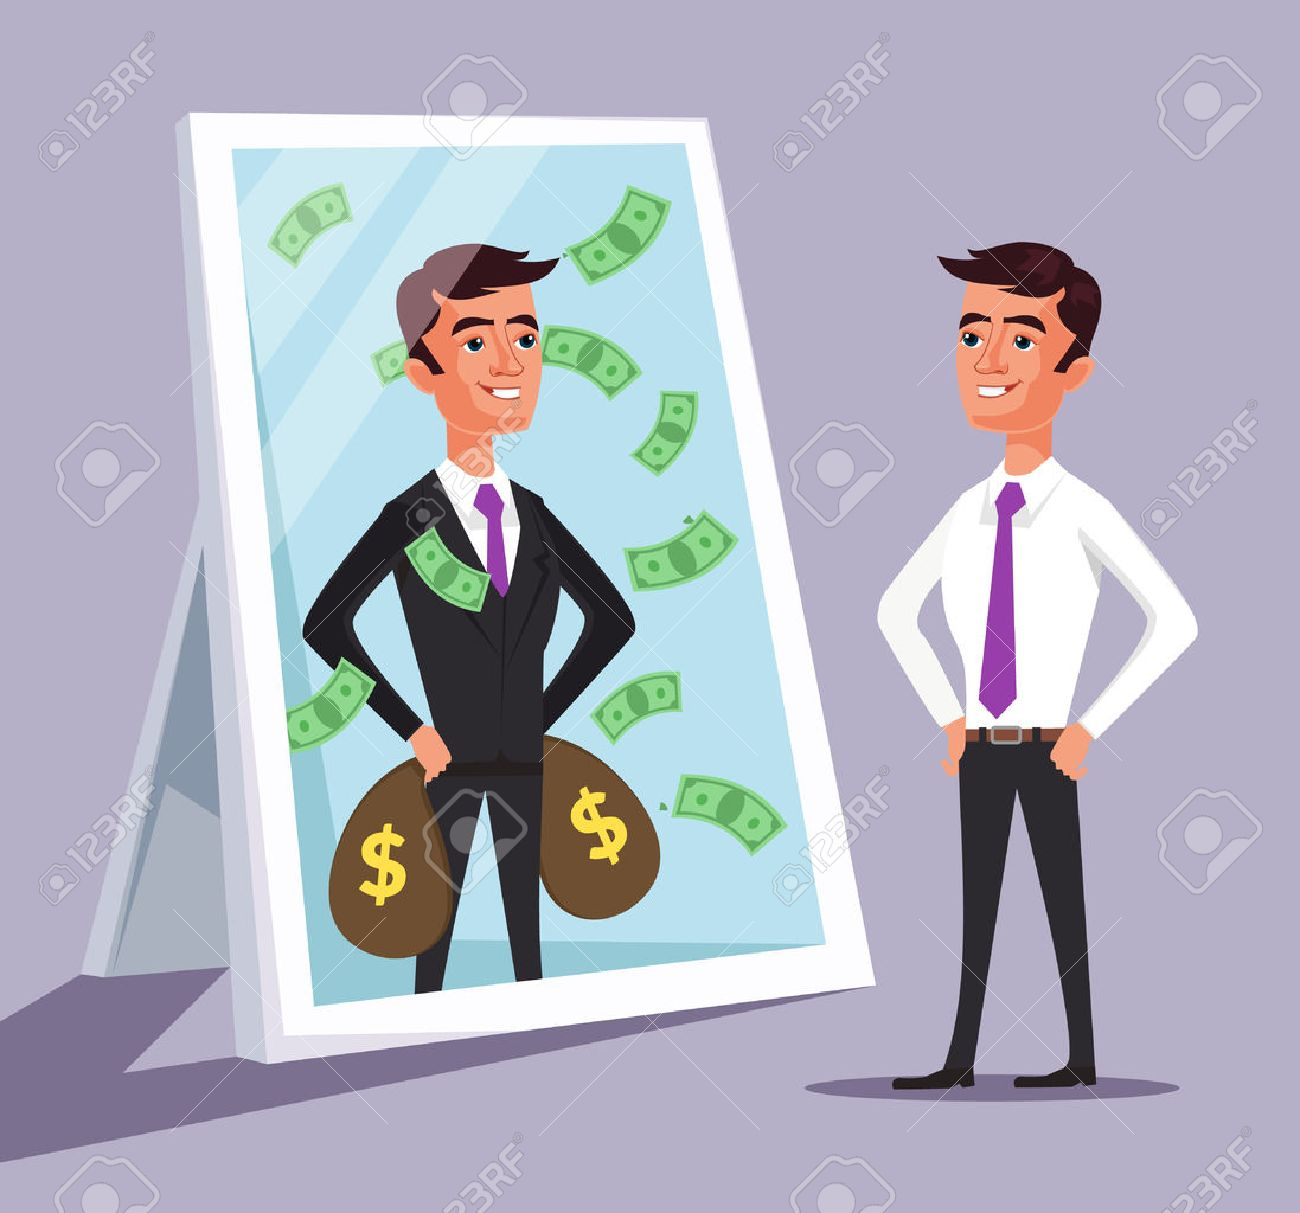 Business man see himself being successful. Vector flat cartoon illustration - 56254861